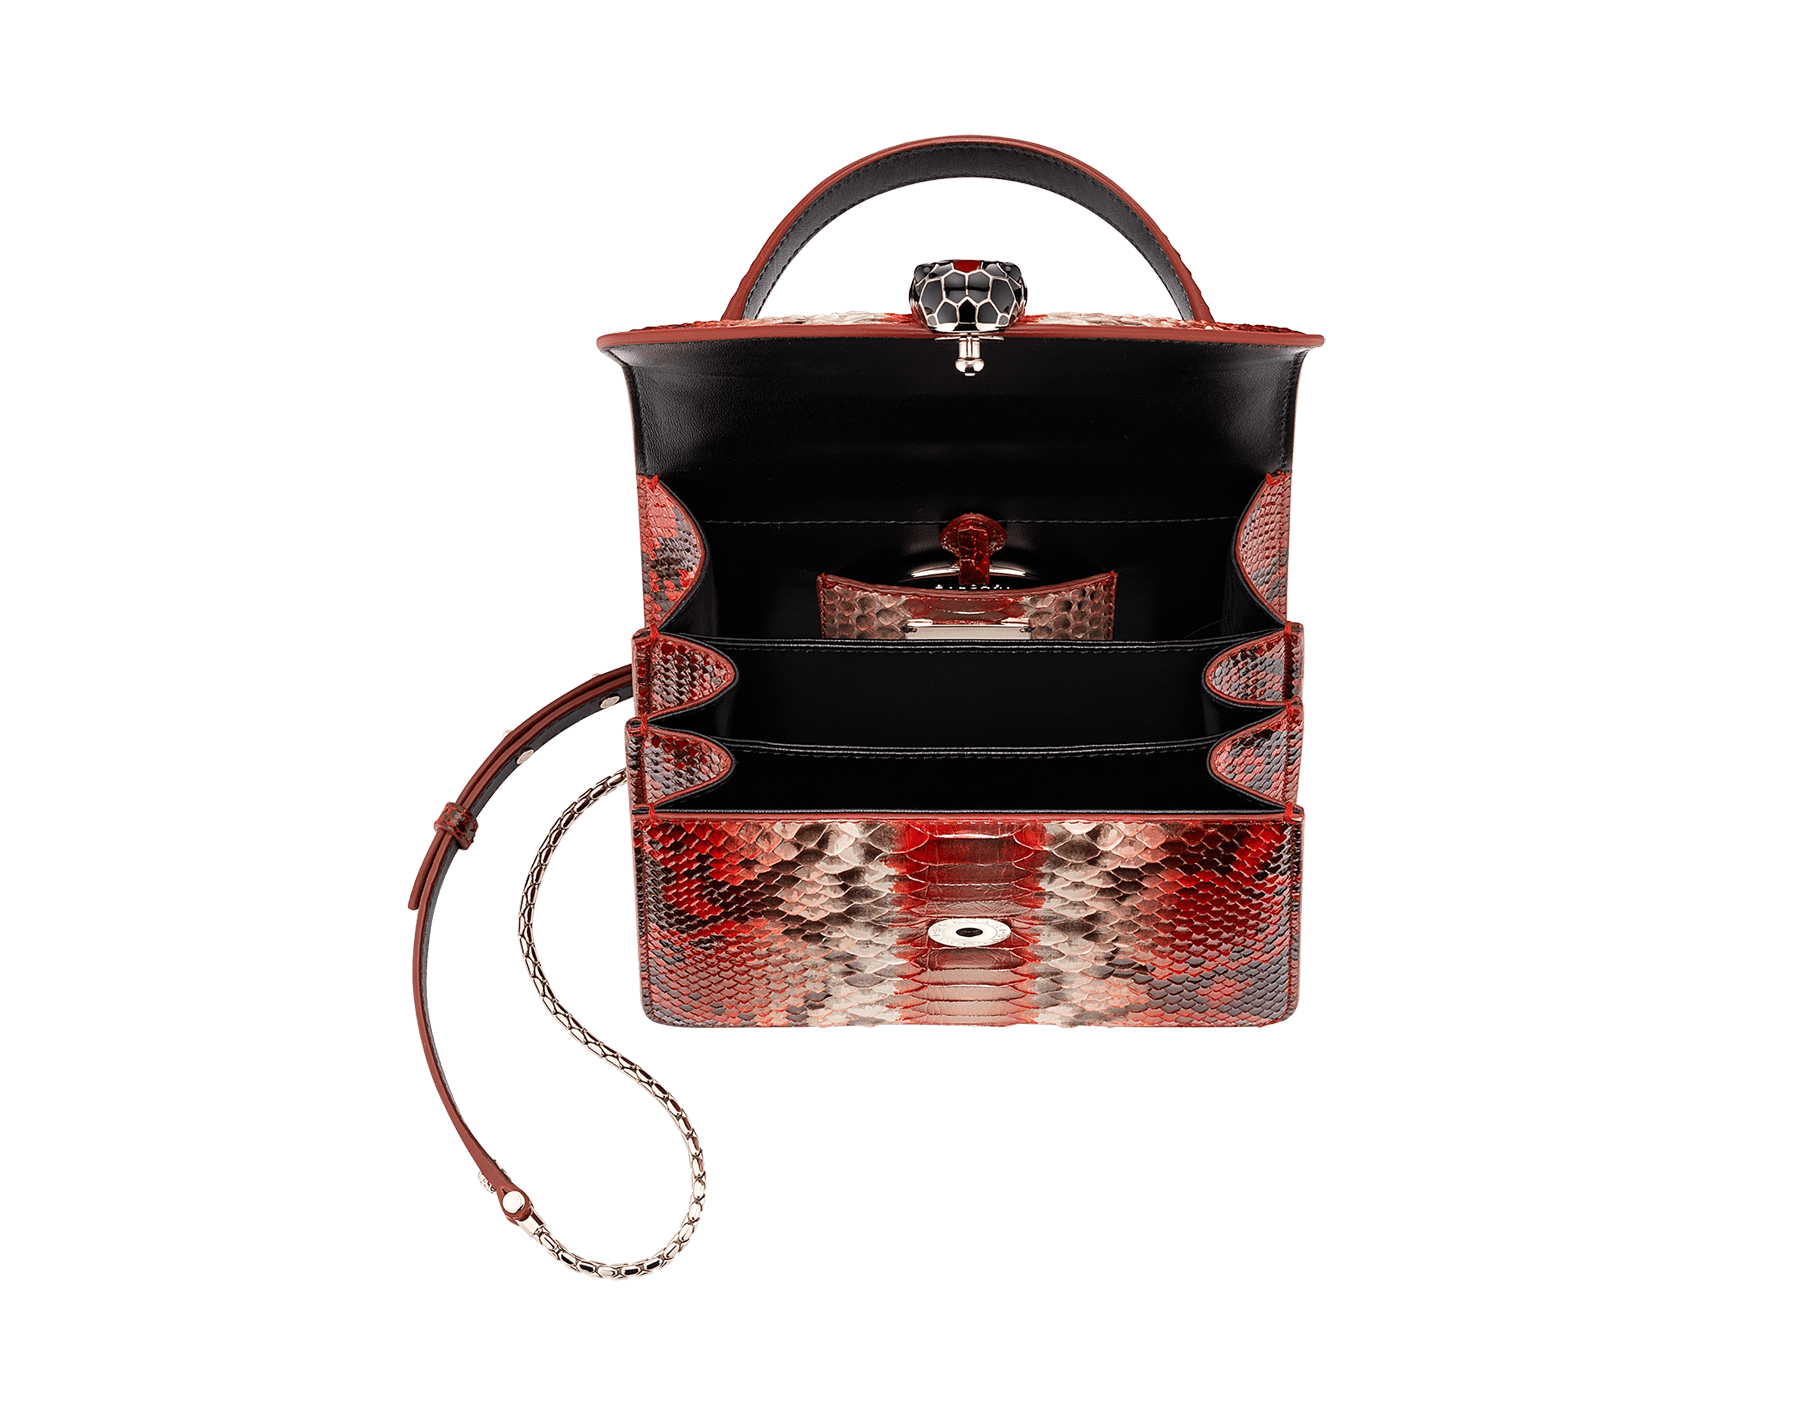 """Serpenti Forever "" crossbody bag in carmine jasper Eclectic"" python skin. Iconic snakehead closure in light gold plated brass enriched with black and carmine jasper enamel and black onyx eyes. 288874 image 4"